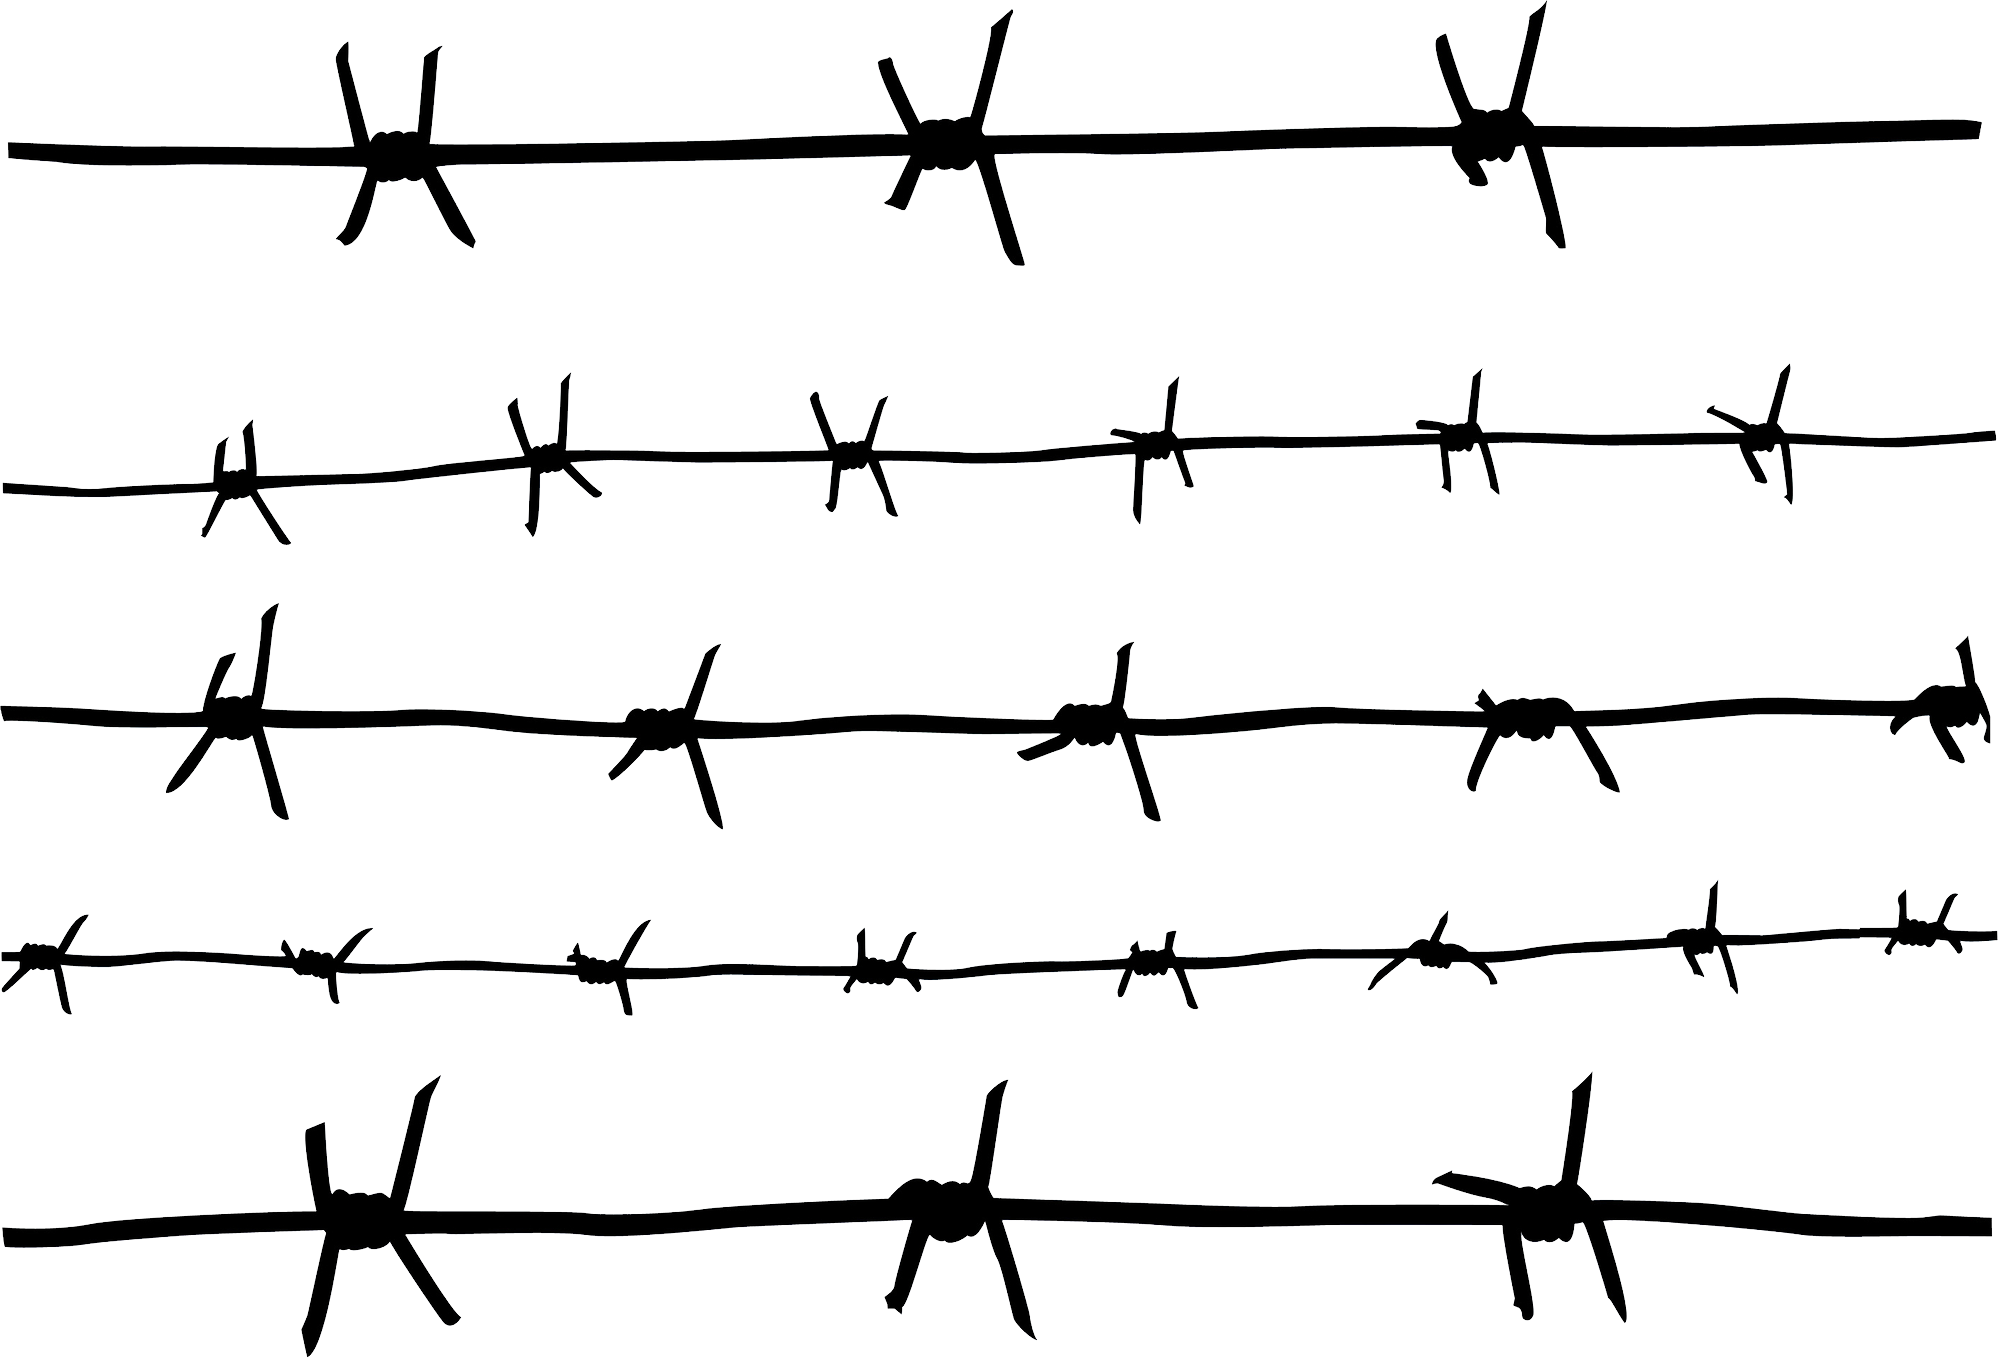 Fence clipart bob wire. Barbwire png web icons